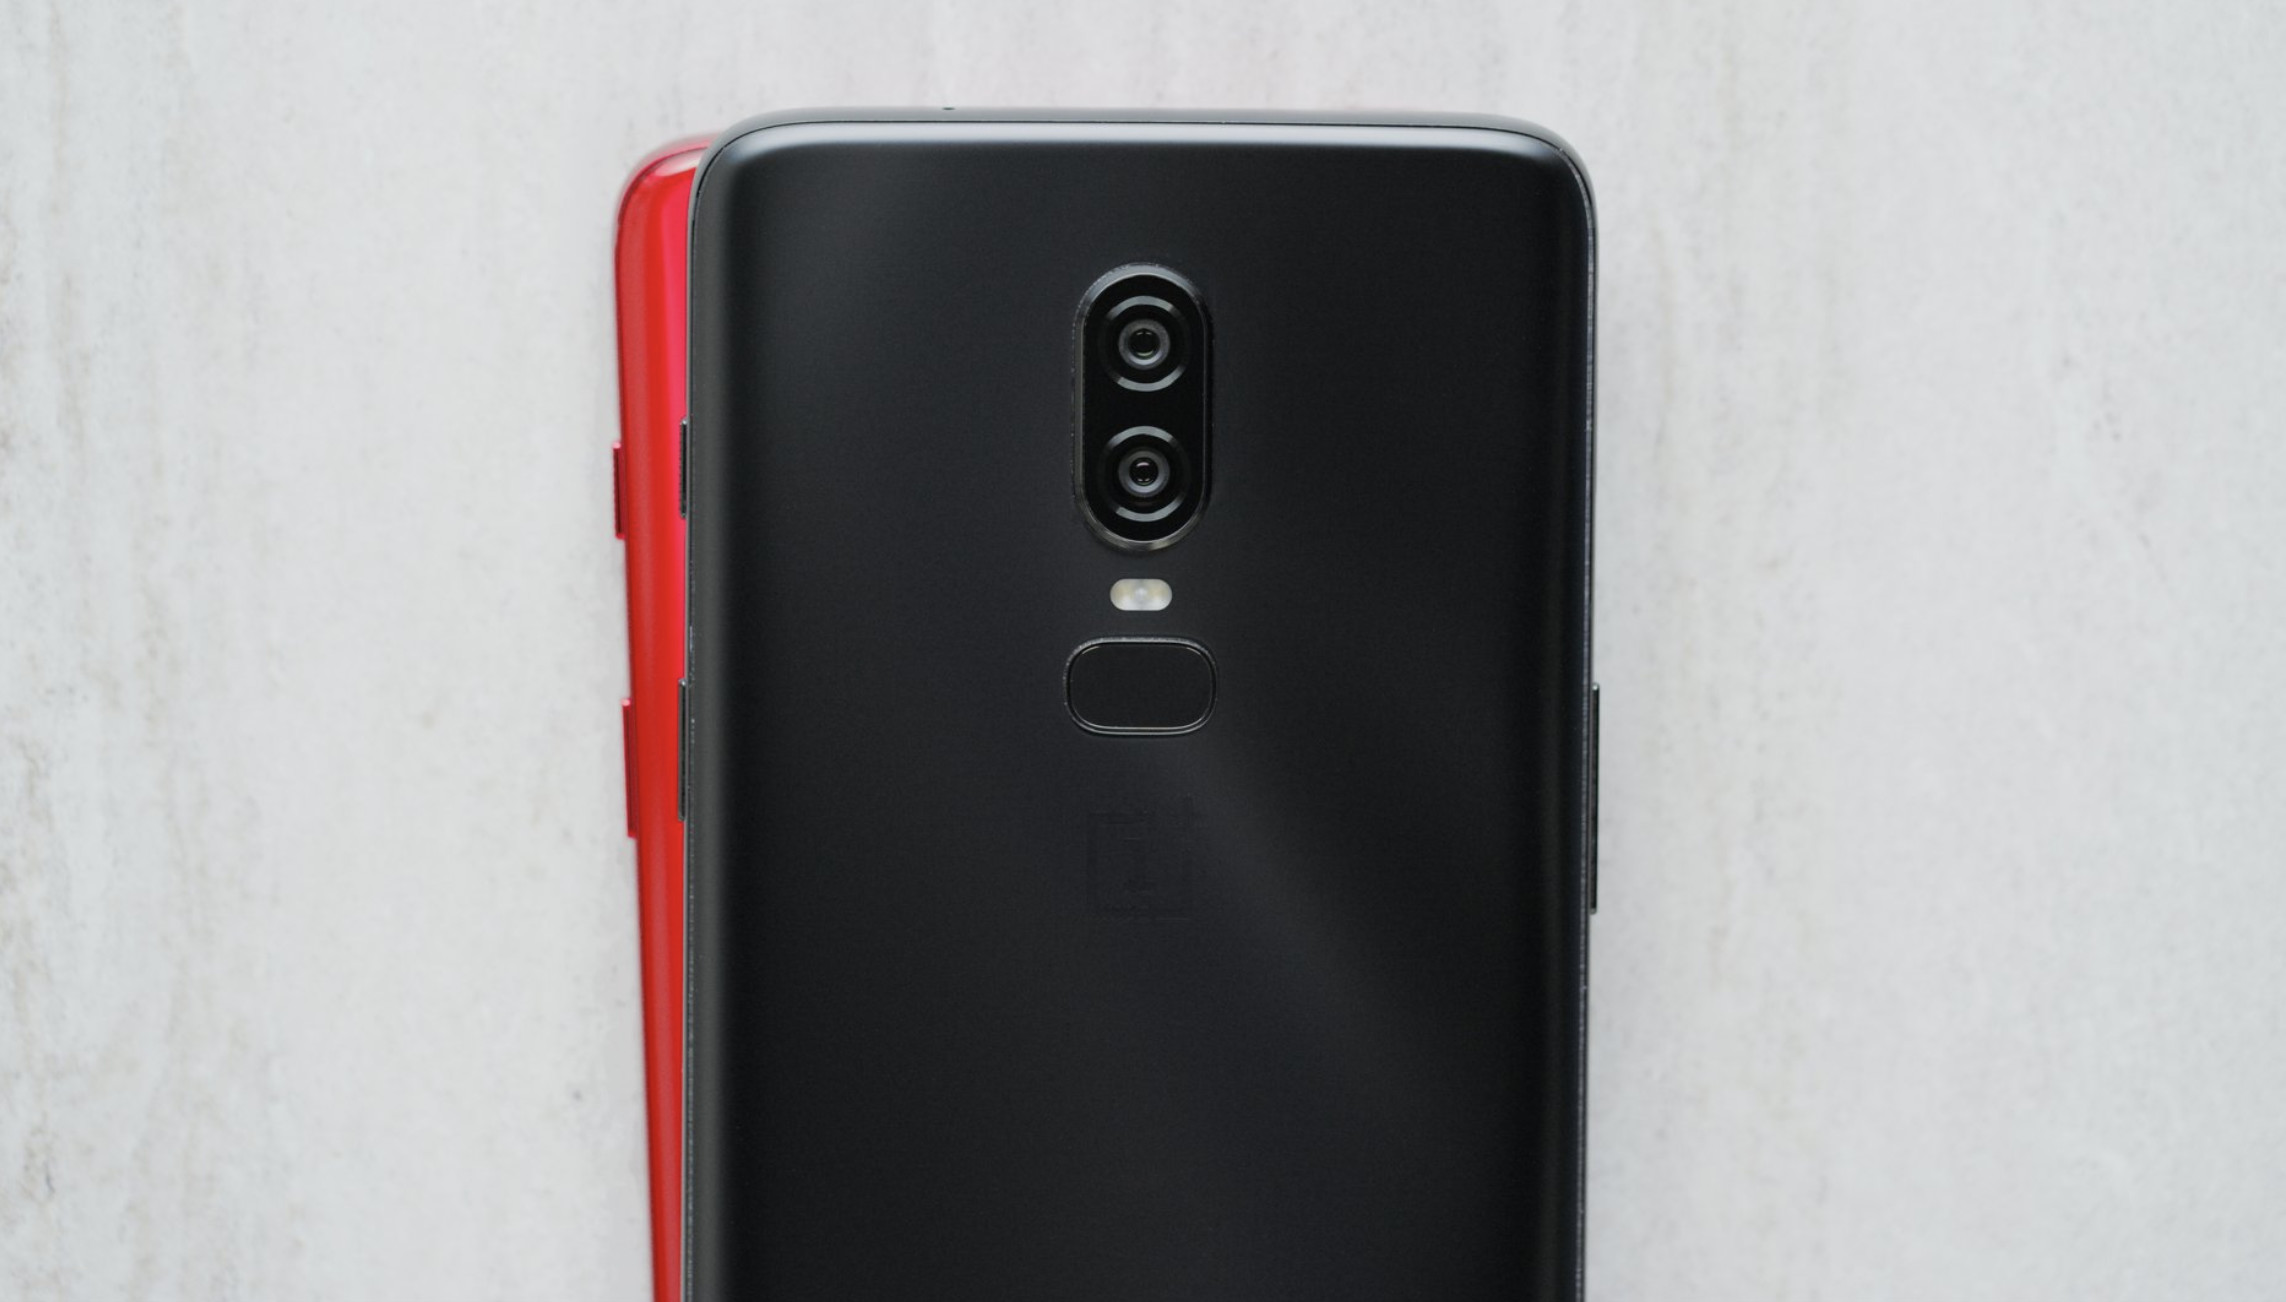 OnePlus officially announces OnePlus 6 in red